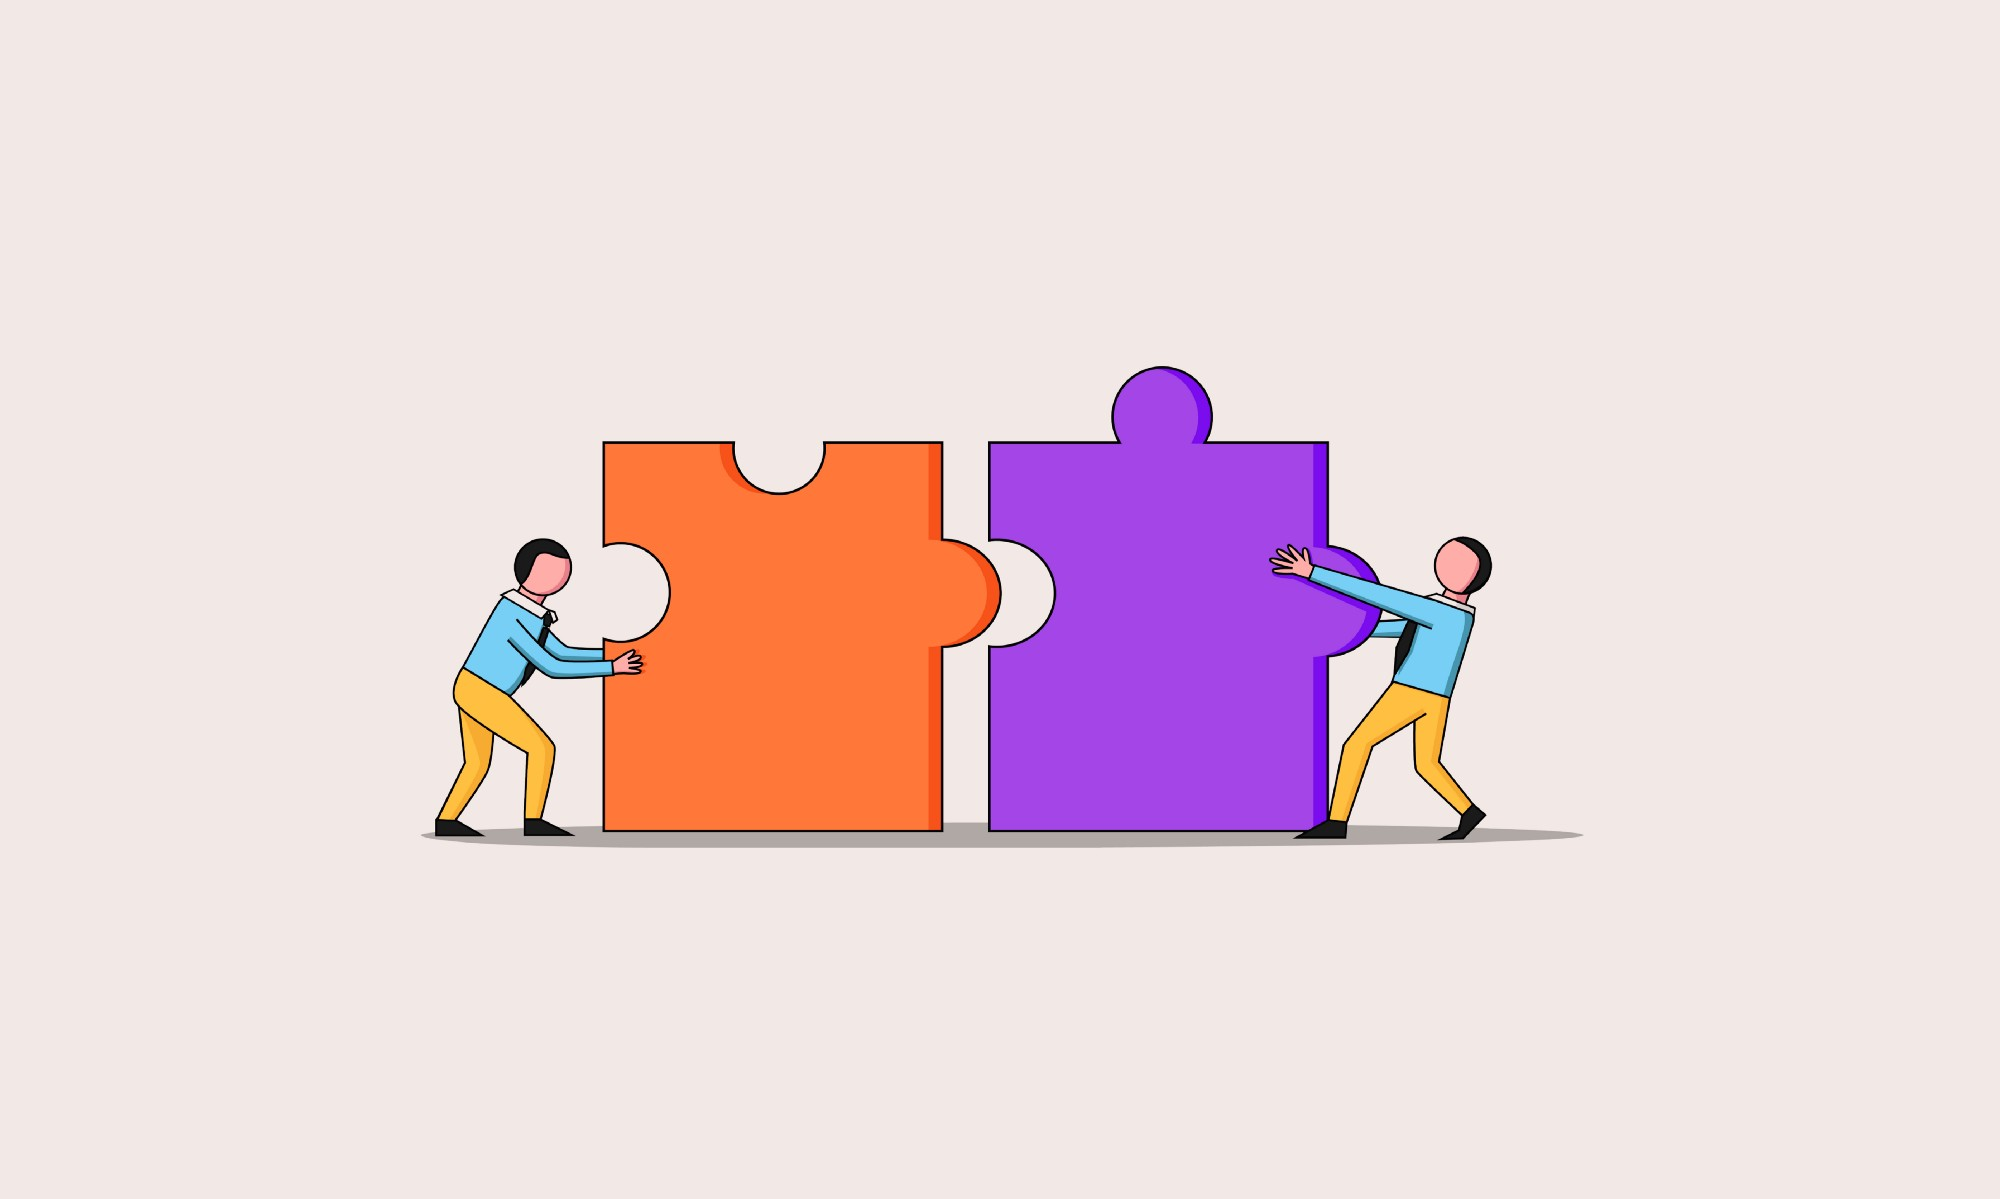 An illustration of 2 characters pushing together two giant puzzle pieces.